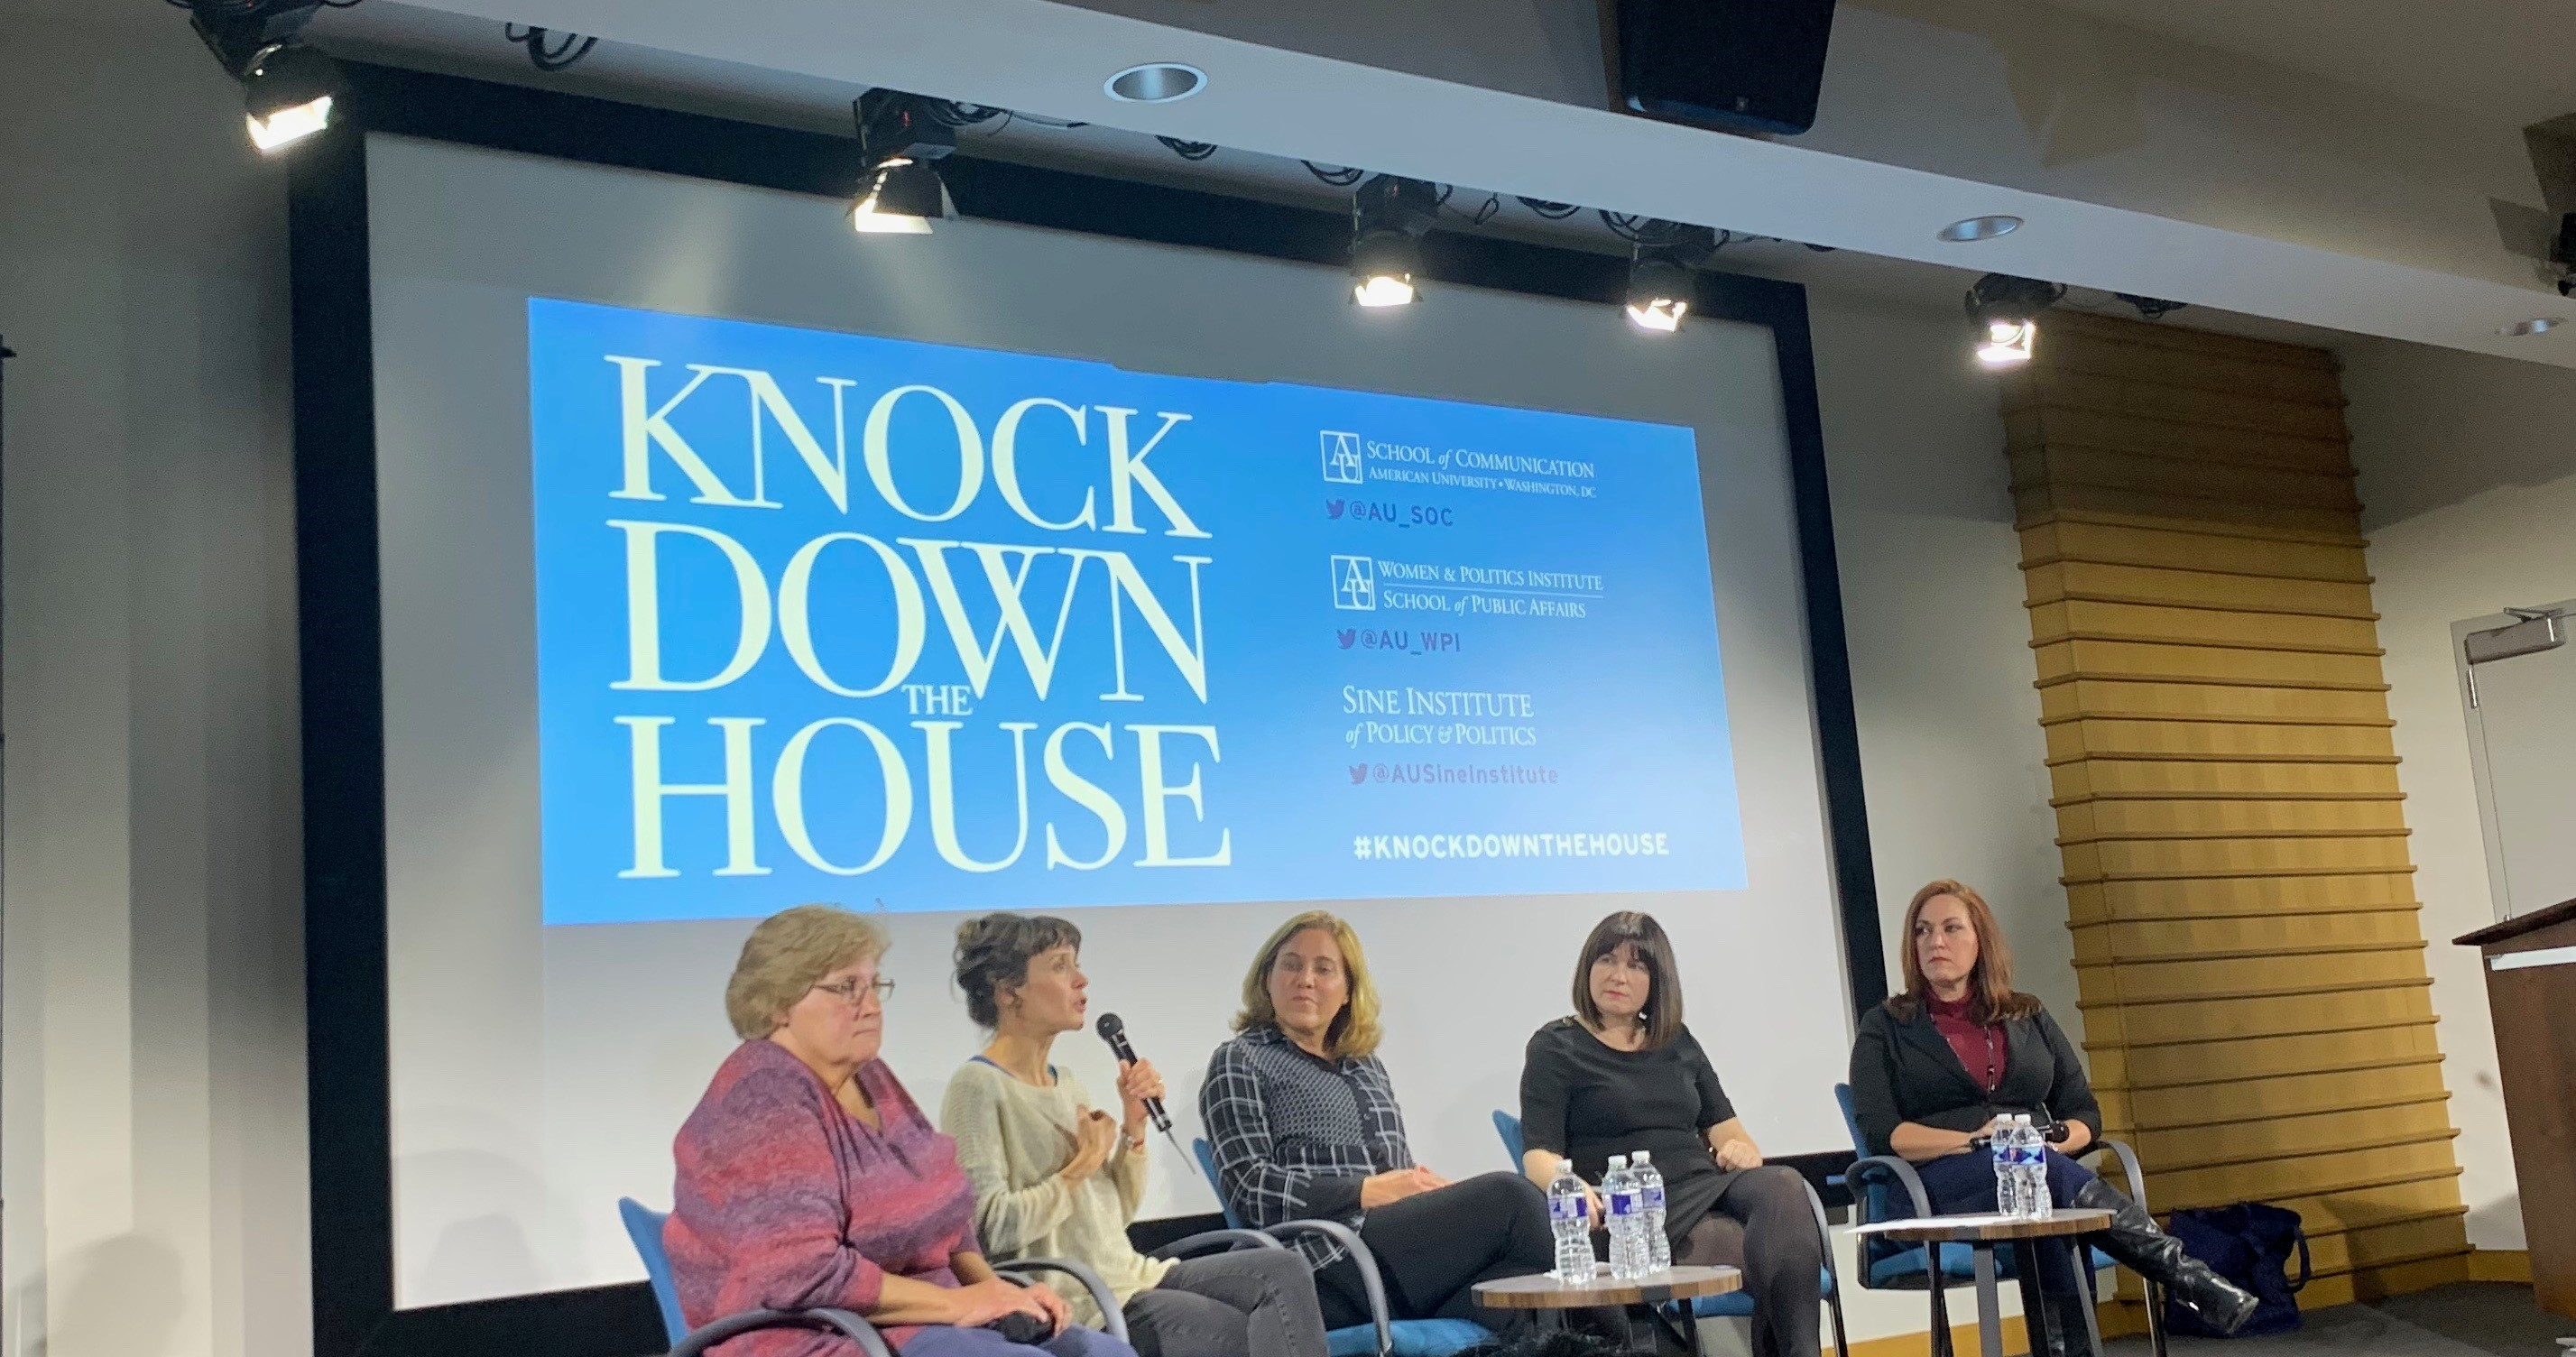 Knock Down the House Panelists